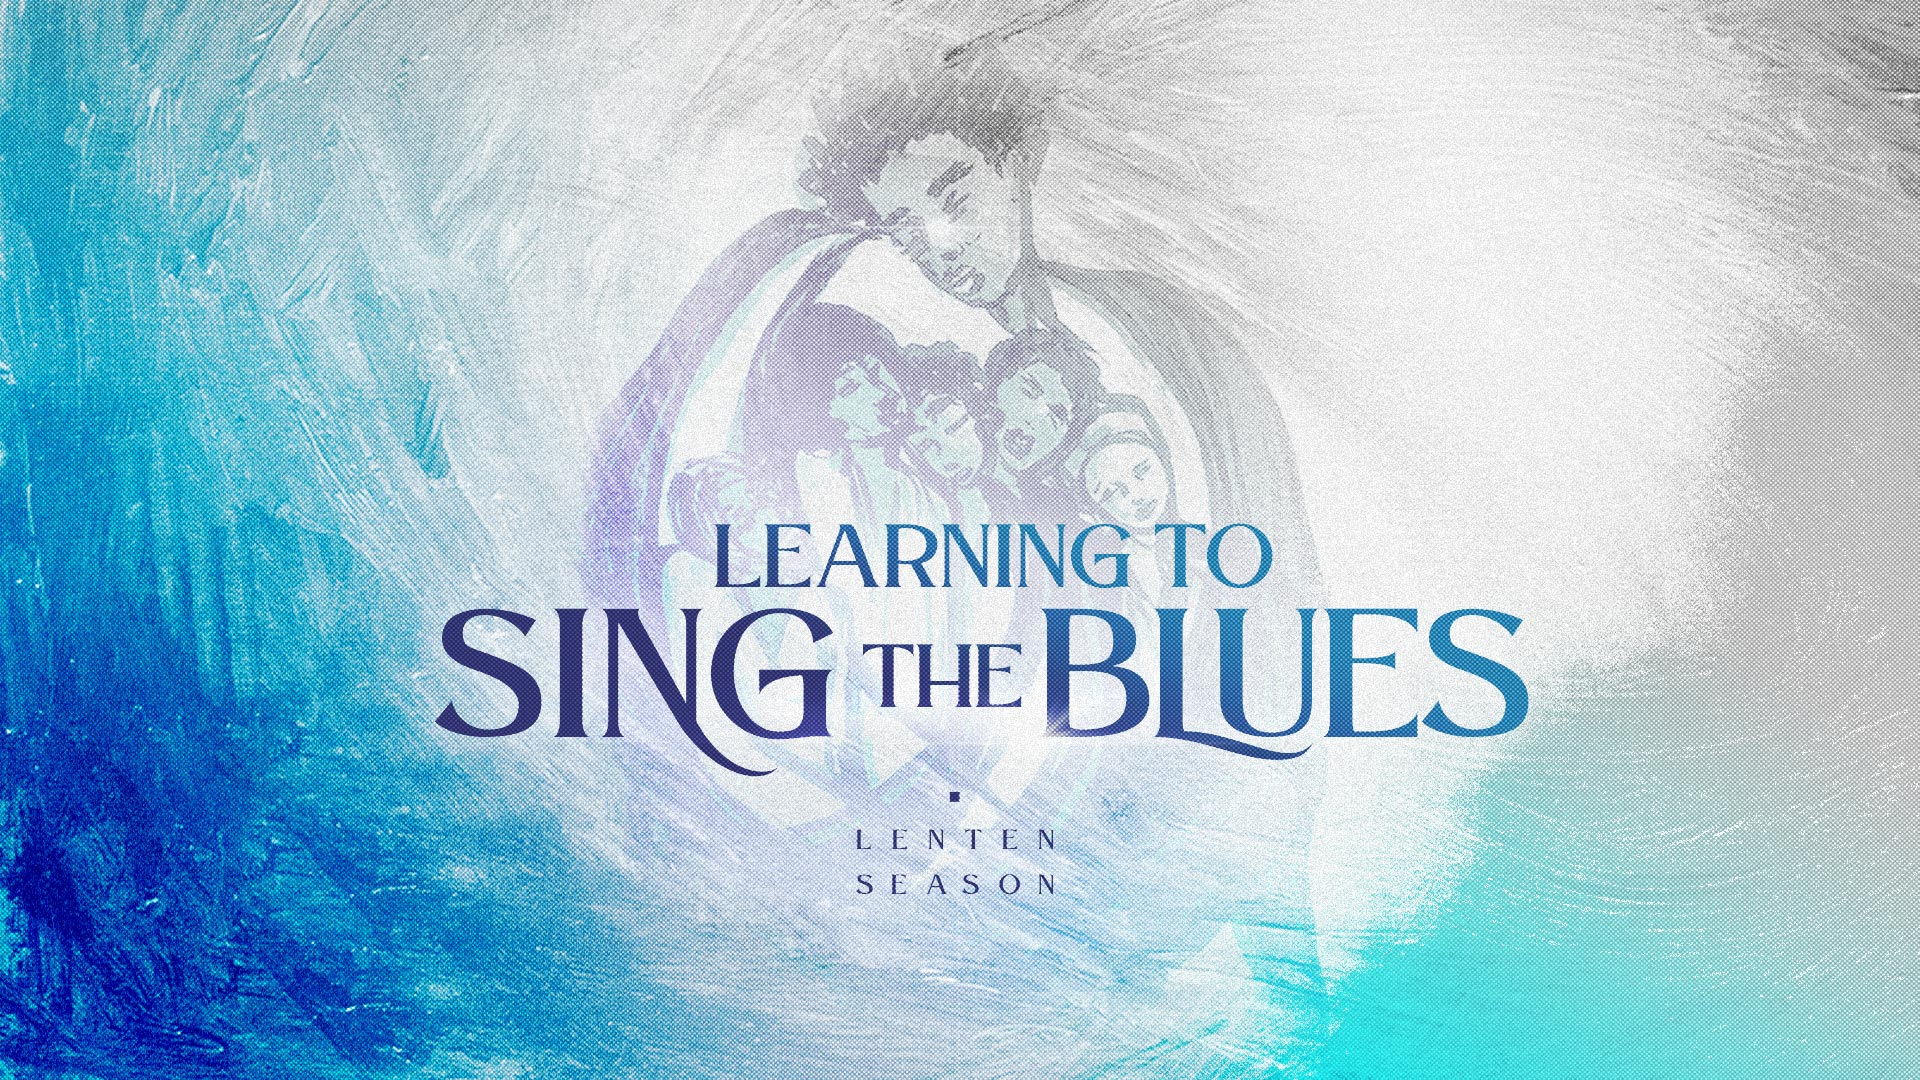 Learning to Sing the Blues